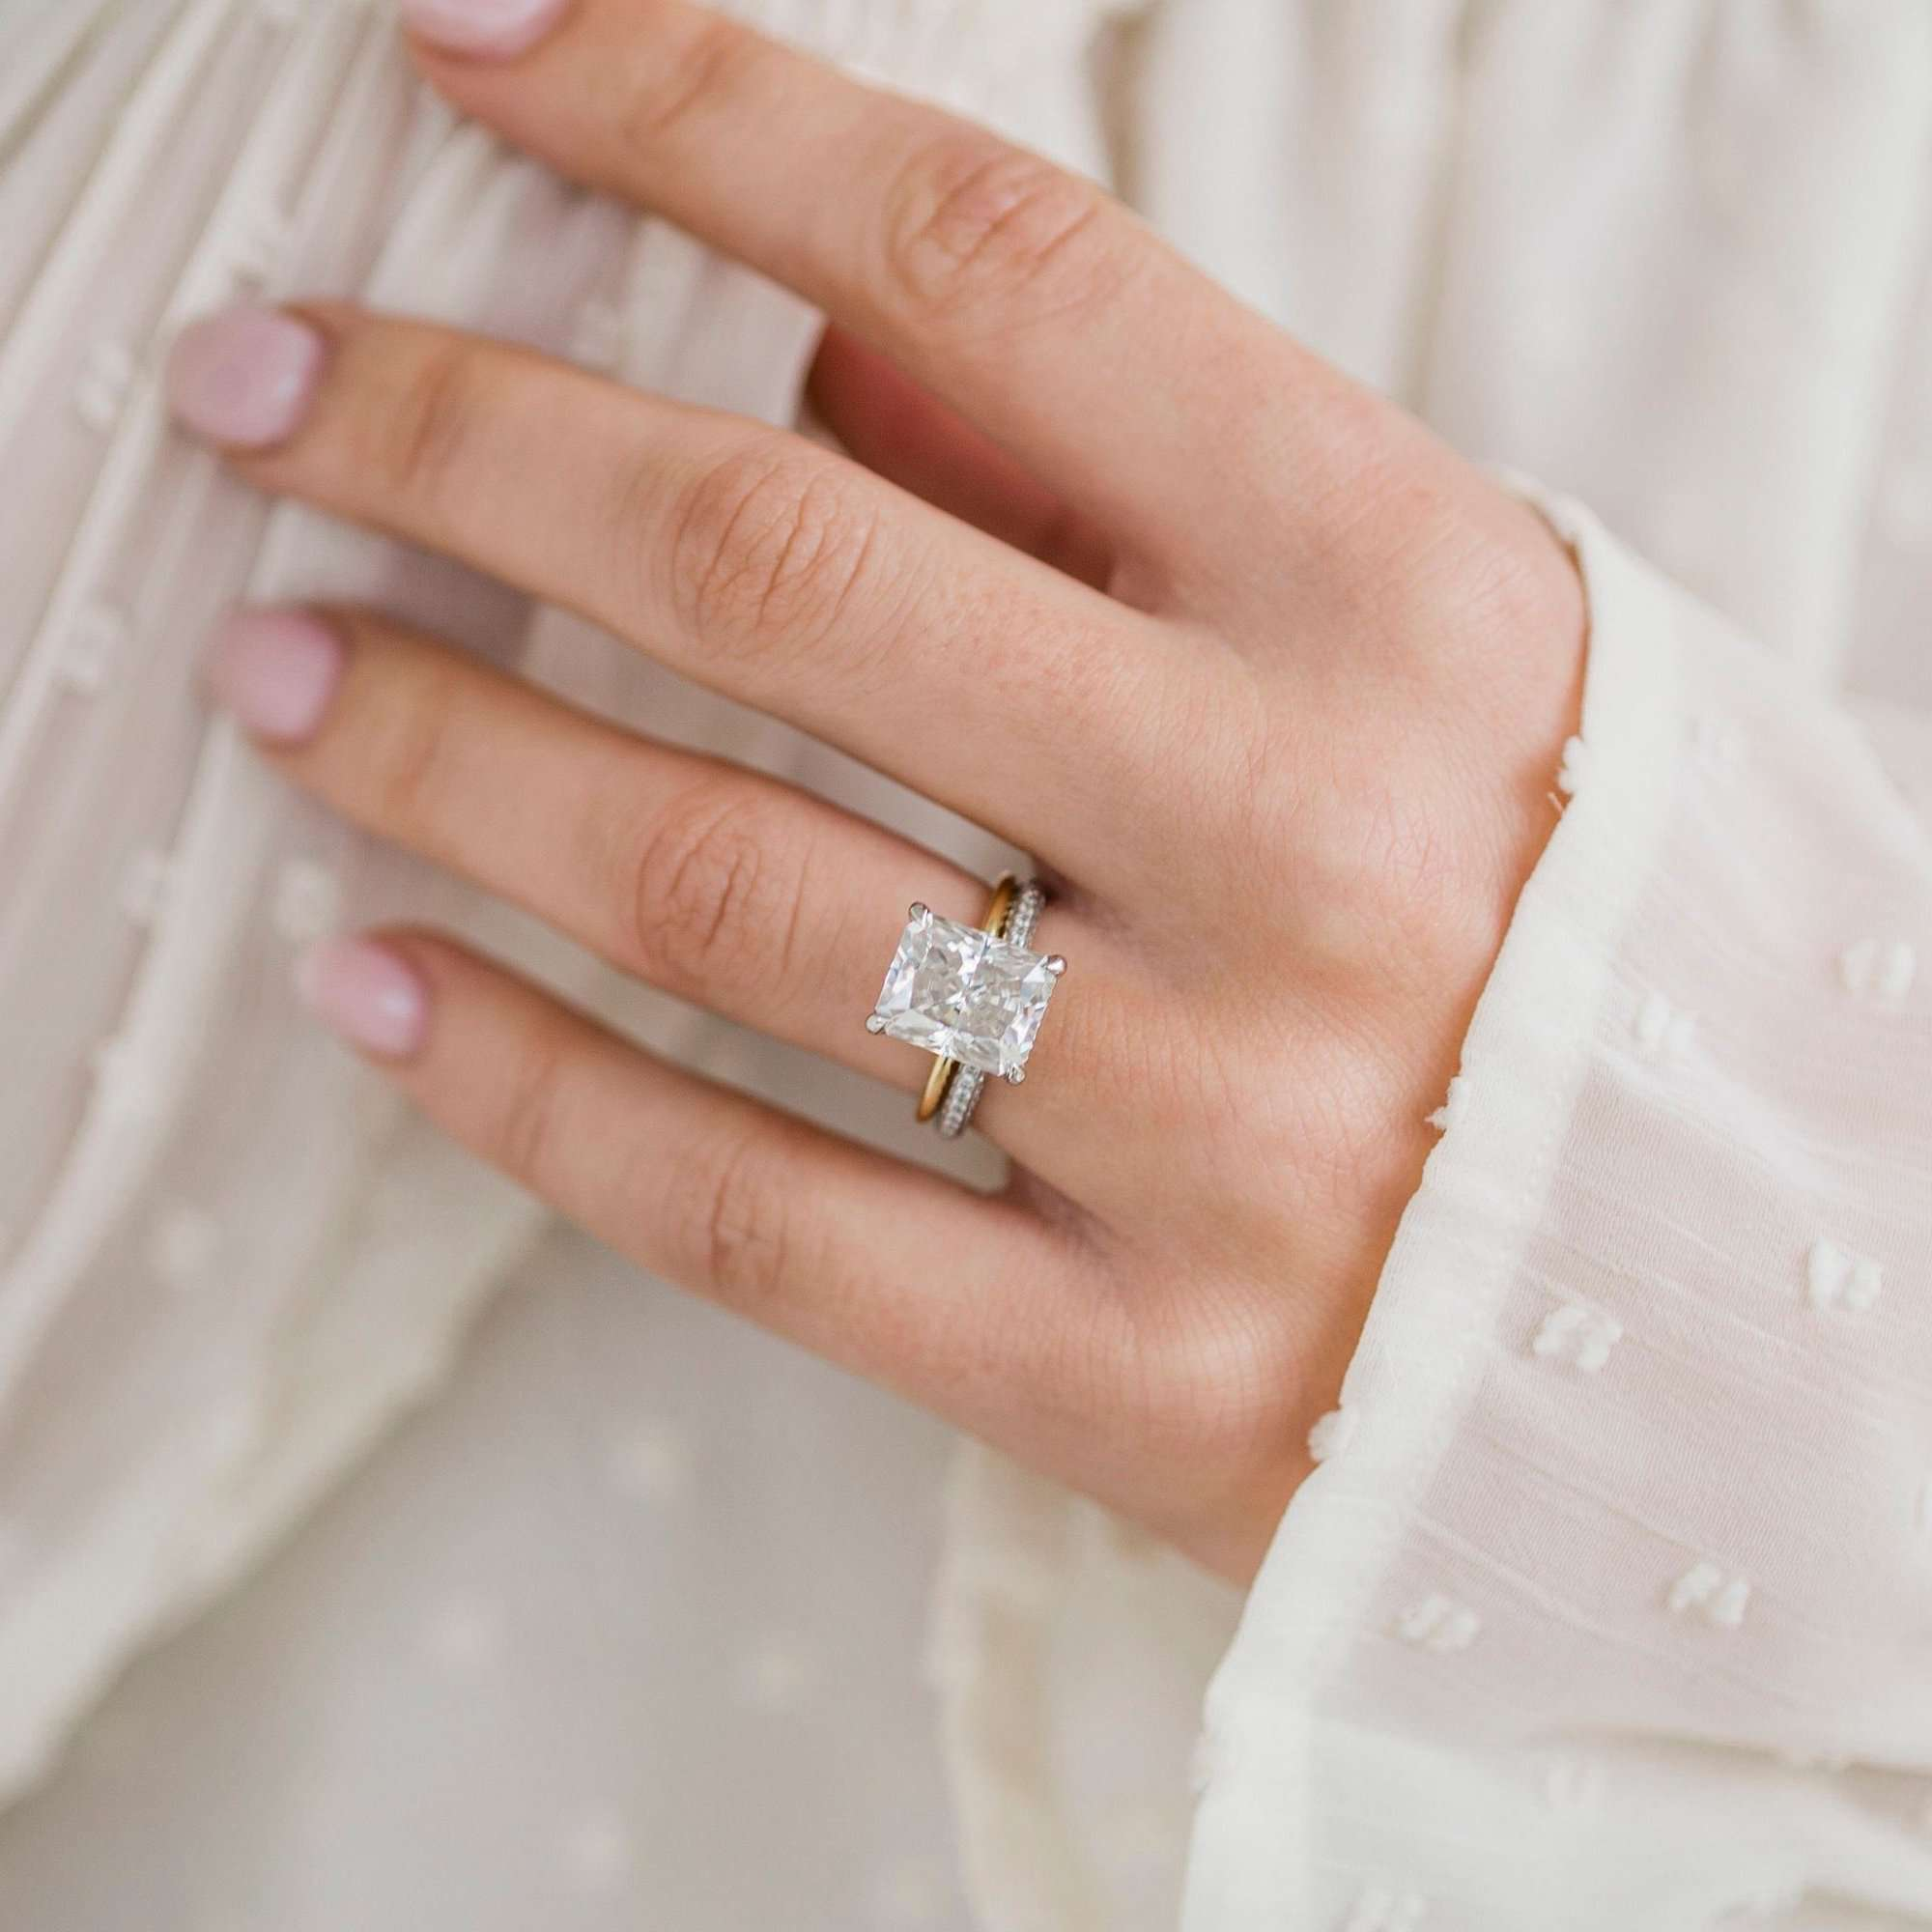 The 12 Most Popular Diamond Shapes For Engagement Rings